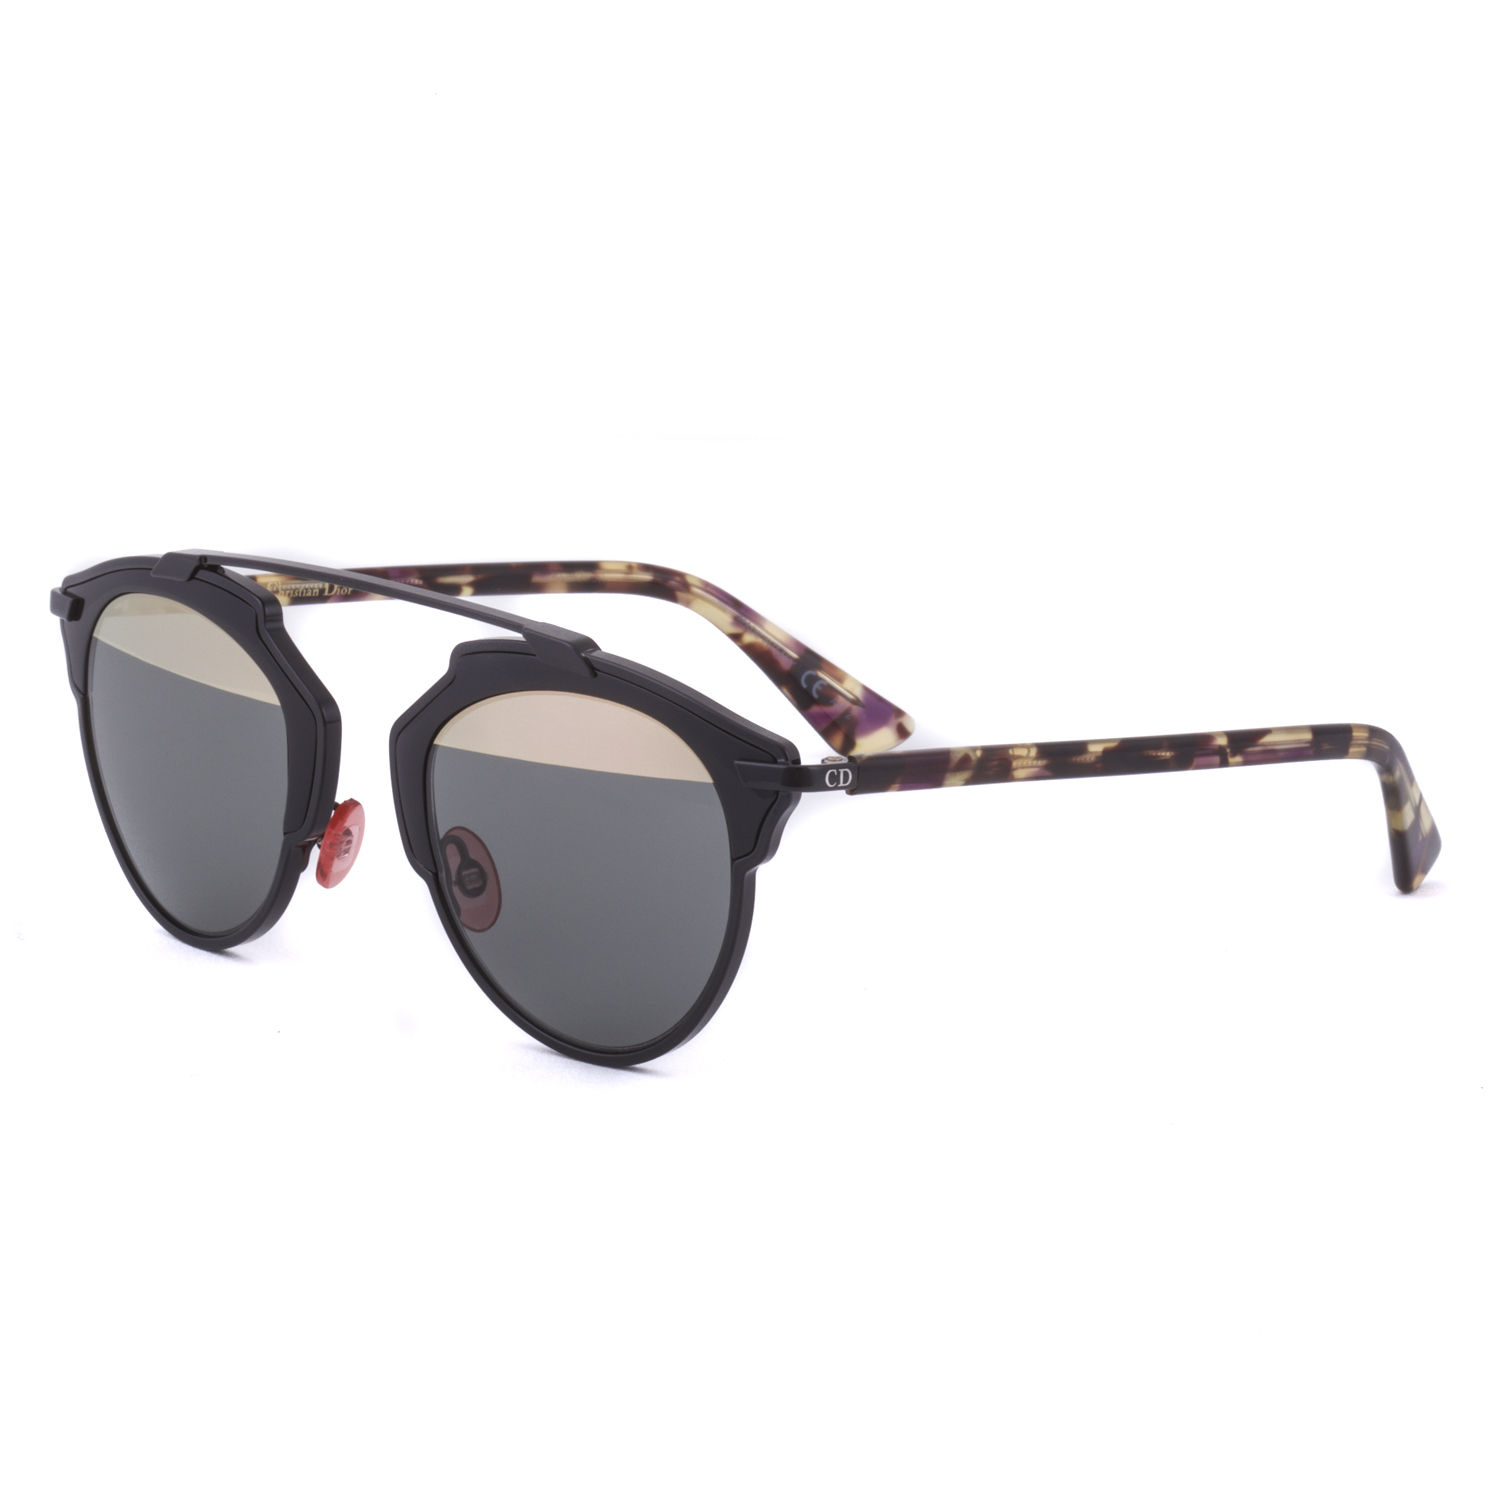 dde82c57df85 Dior So Real Sunglasses Black And Pink